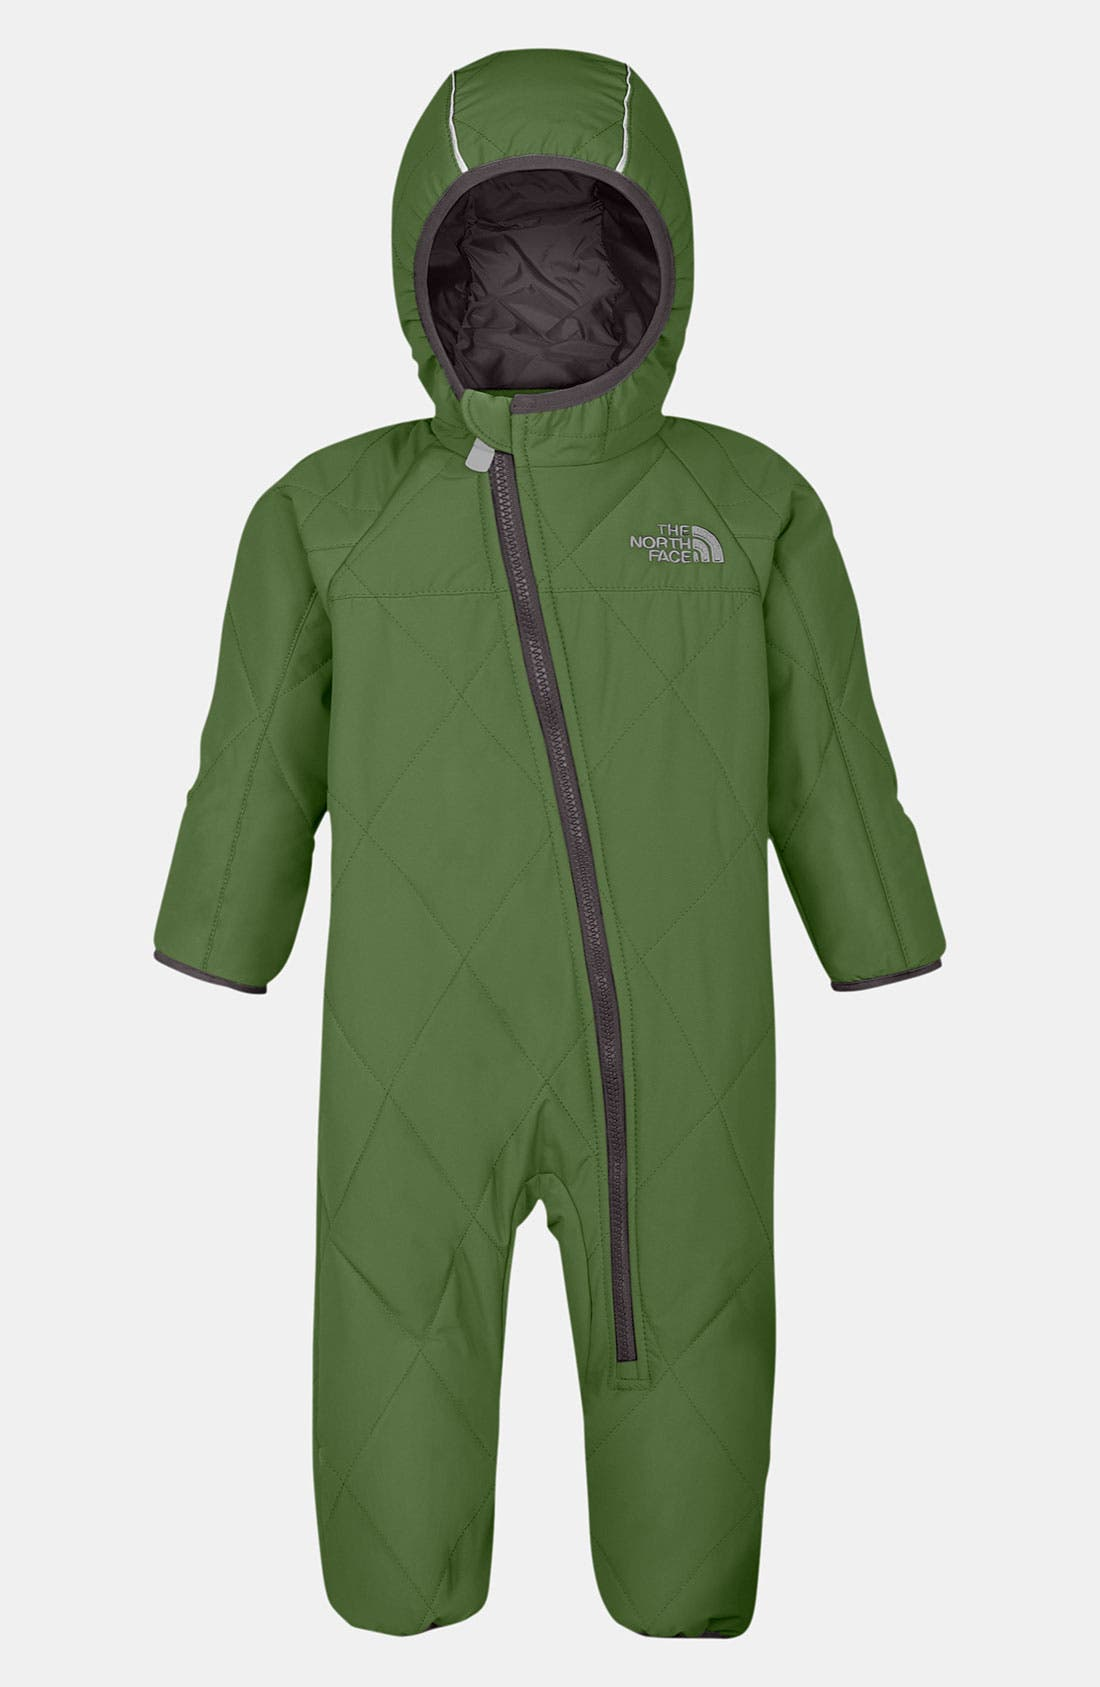 Alternate Image 1 Selected - The North Face 'Toasty Toes' Insulated Bunting (Infant)